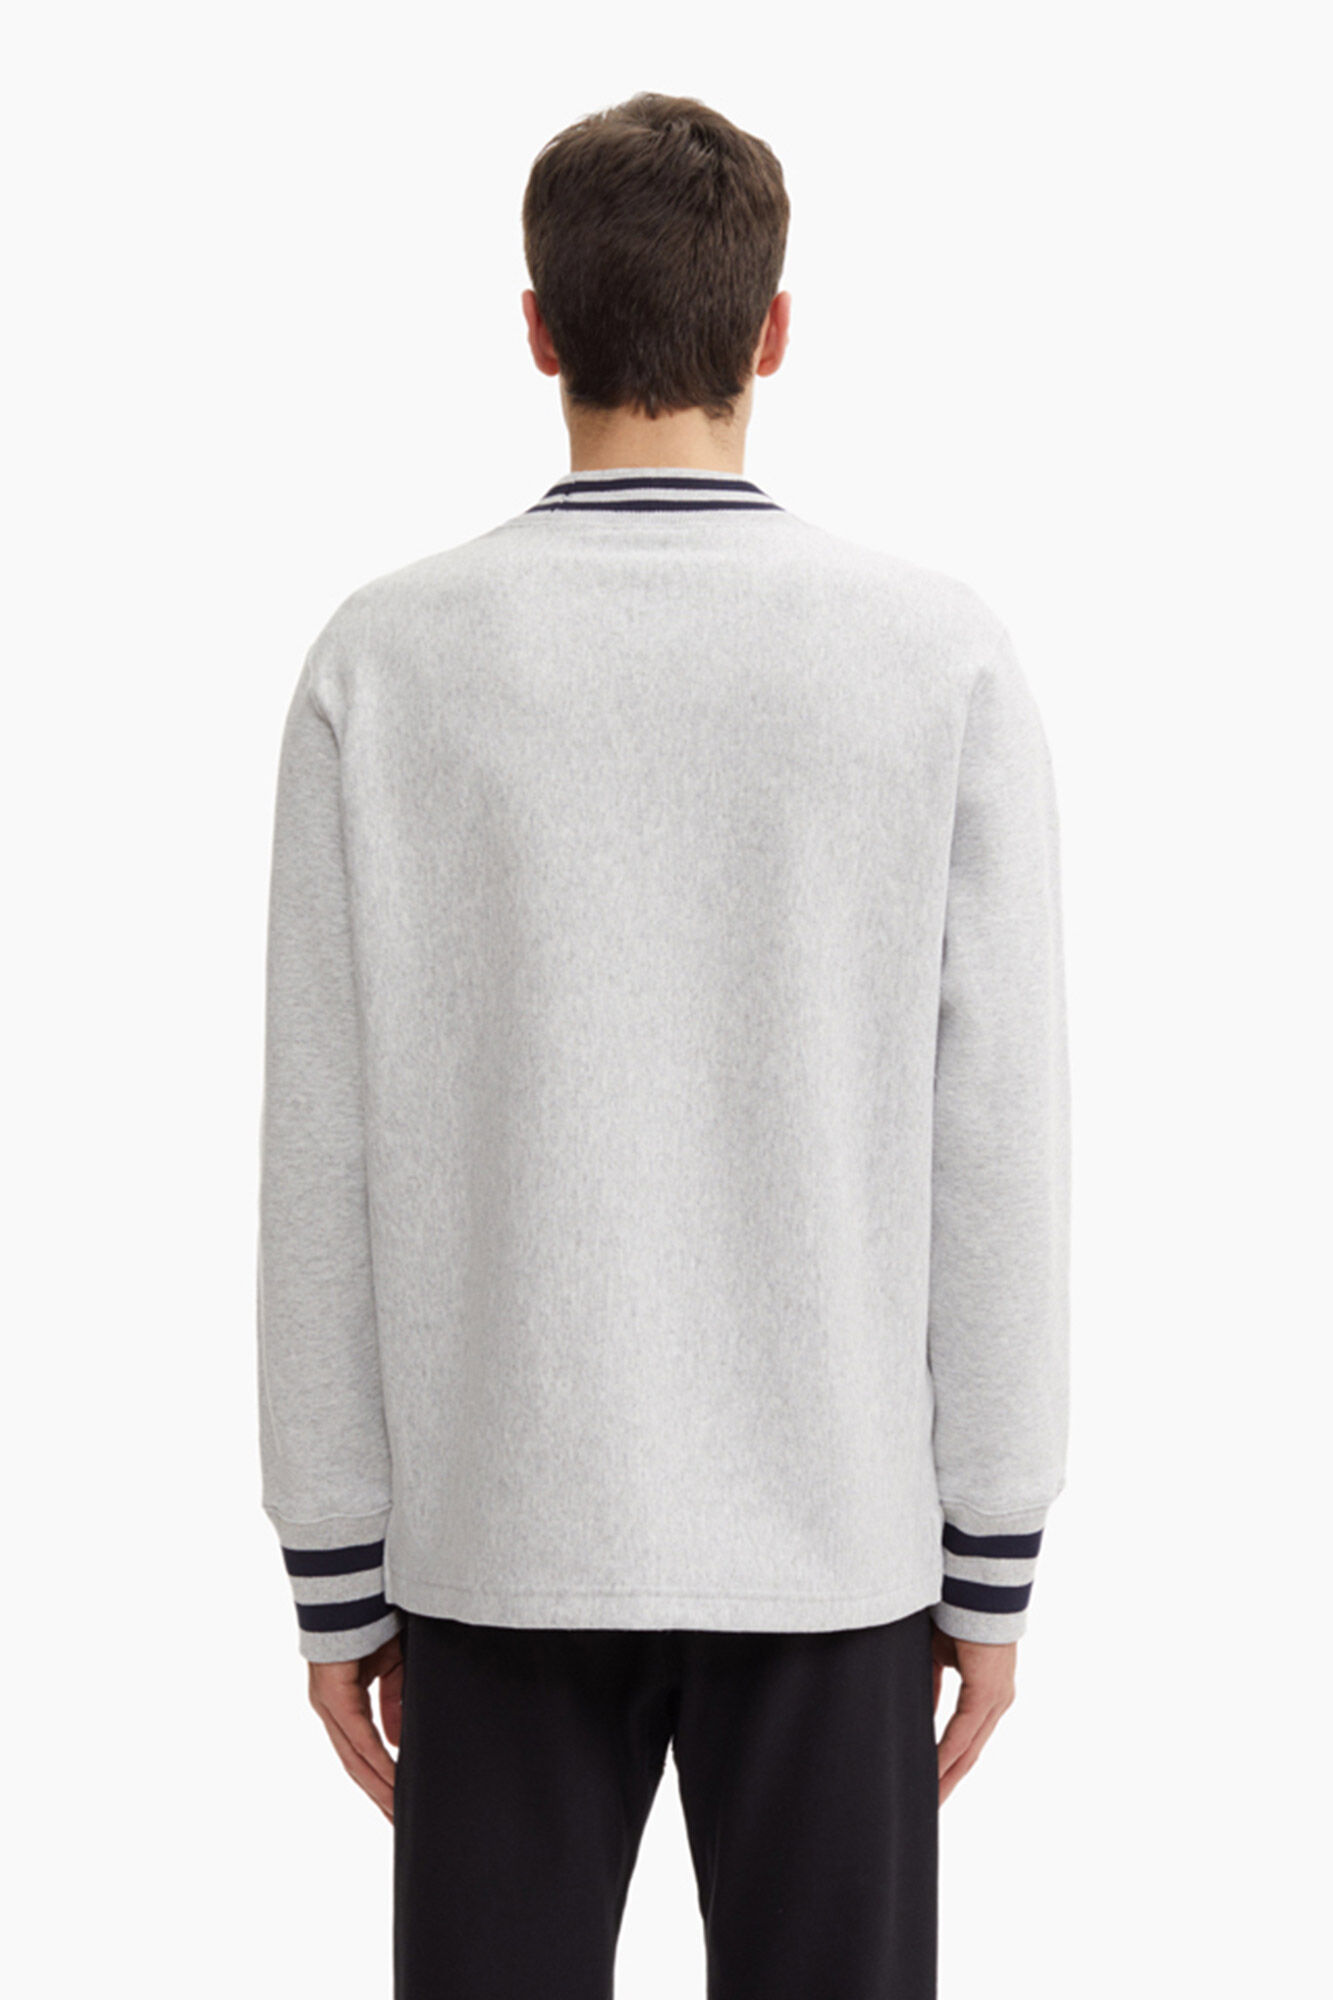 High Neck Sweatshirt 213029, LOXGM